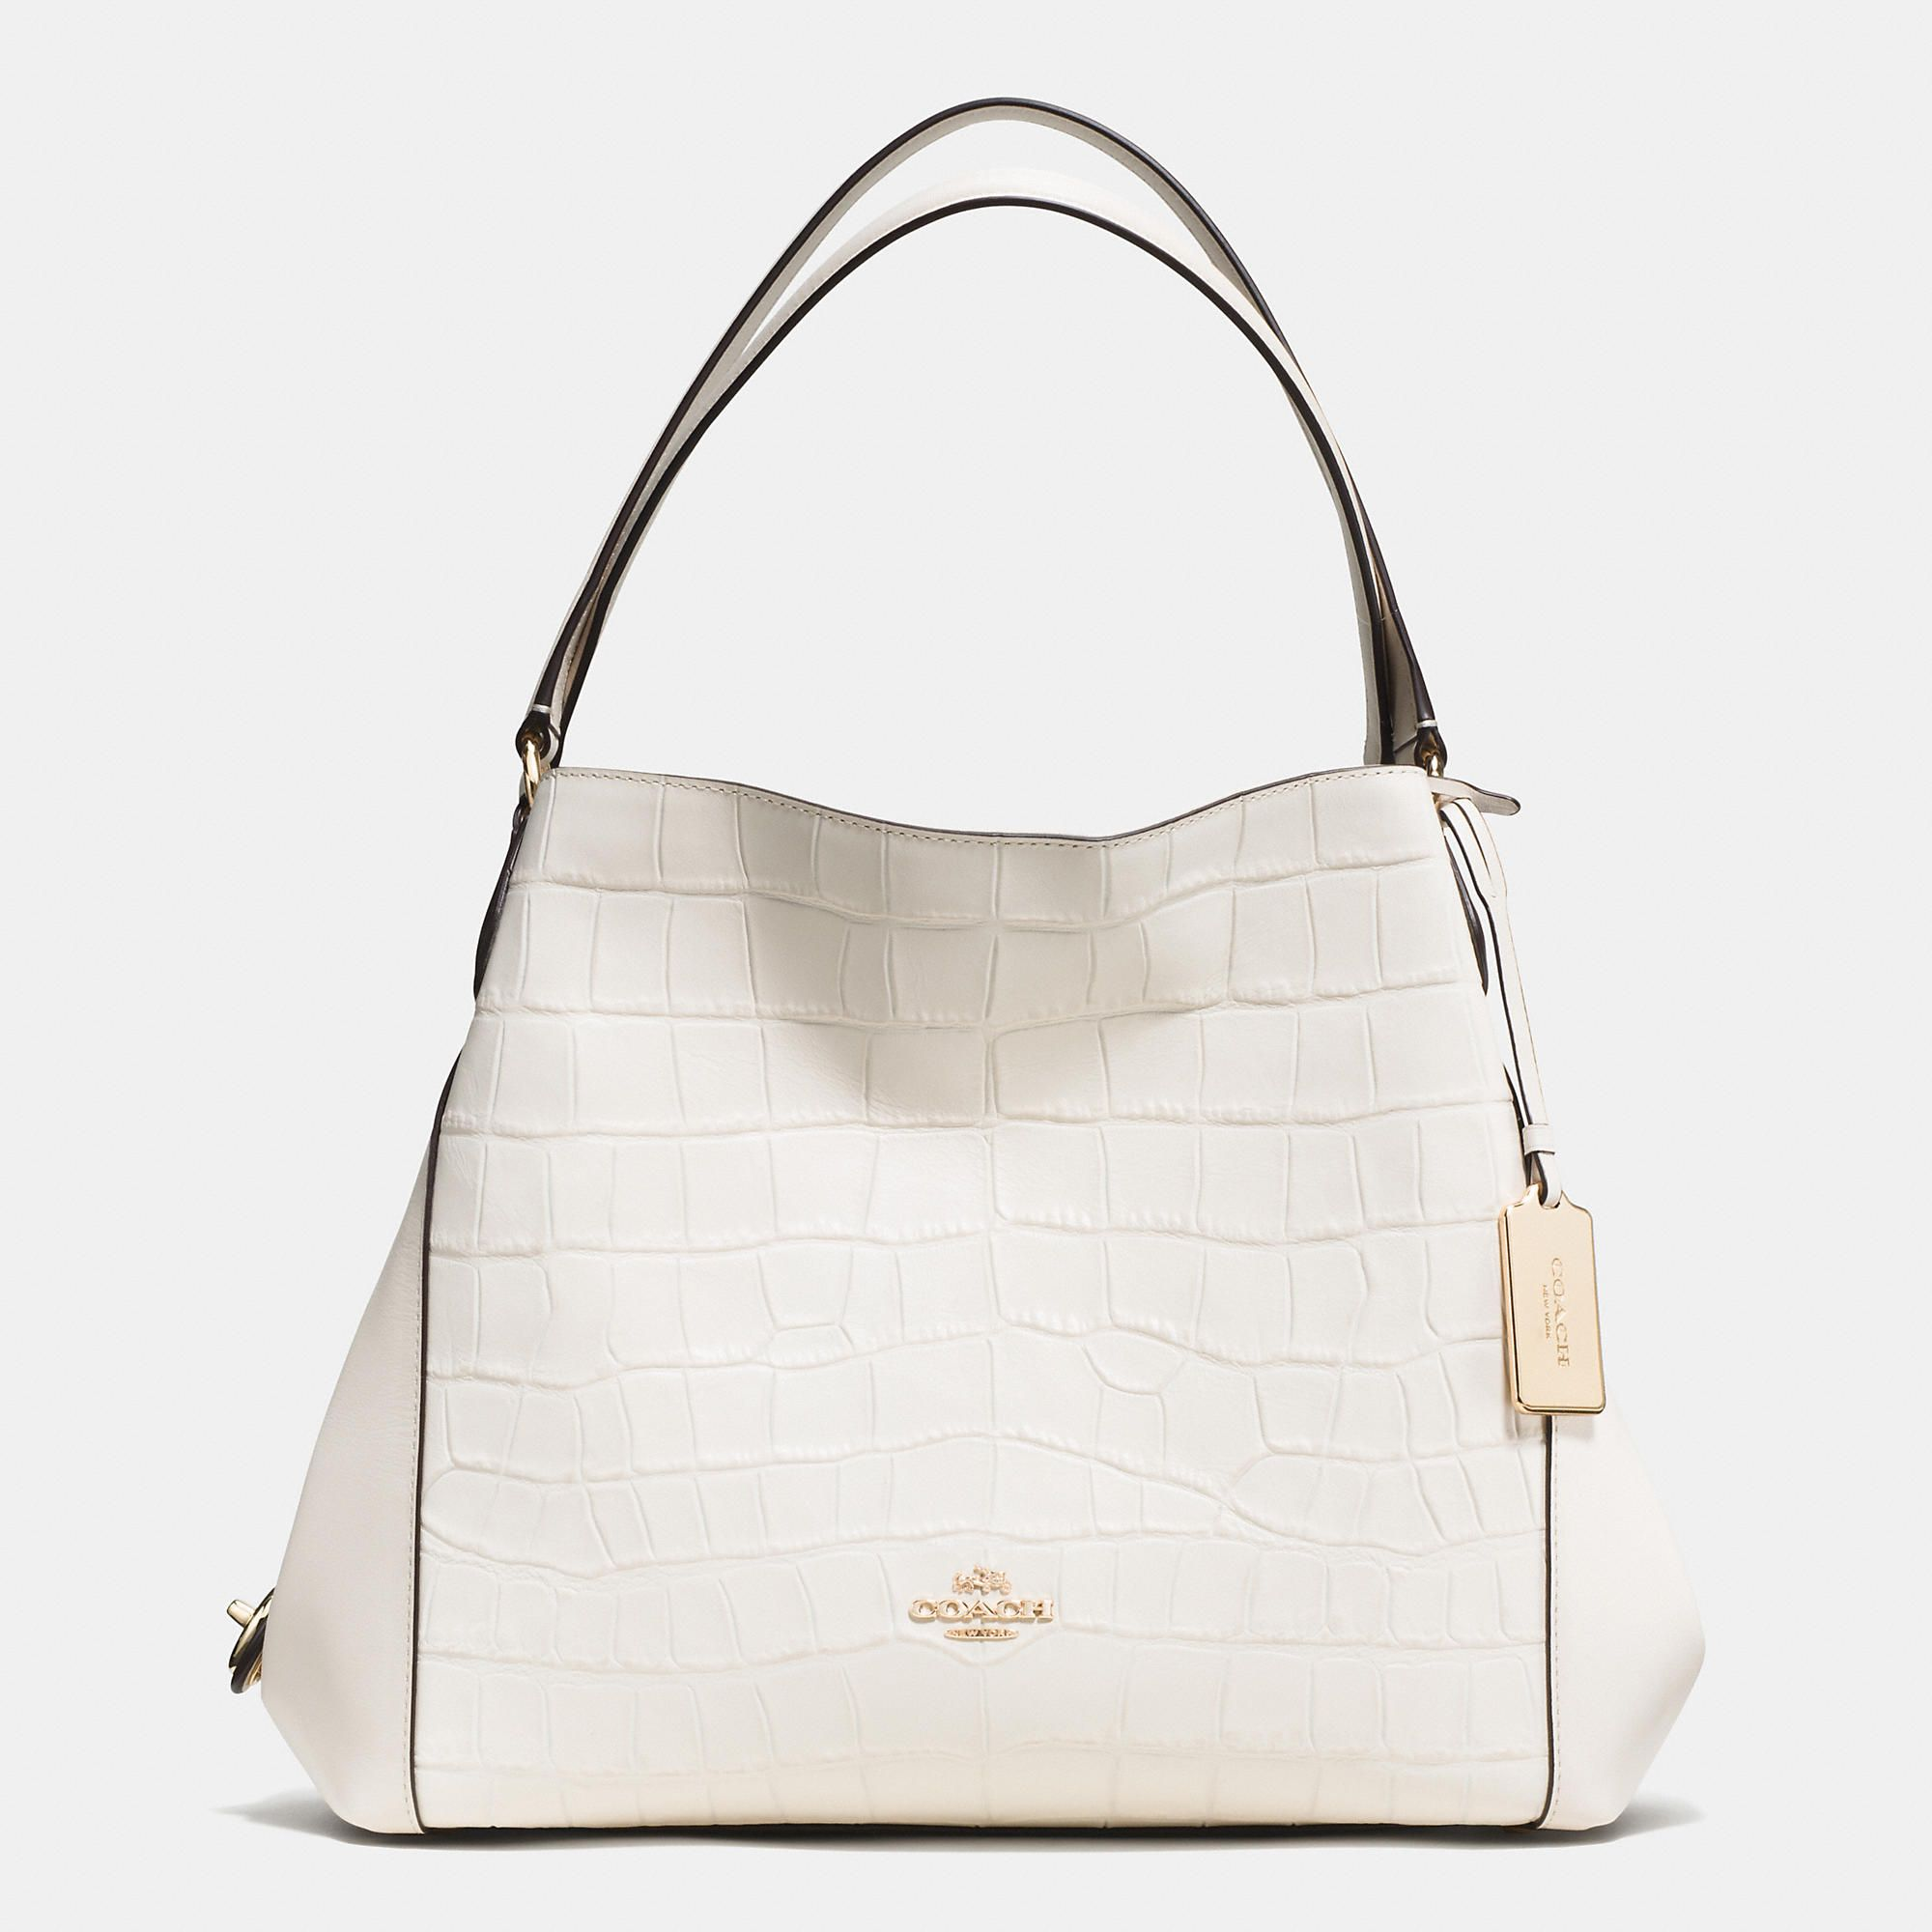 9f00e0849d31 This beloved Coach silhouette has an elegant new look for spring ...